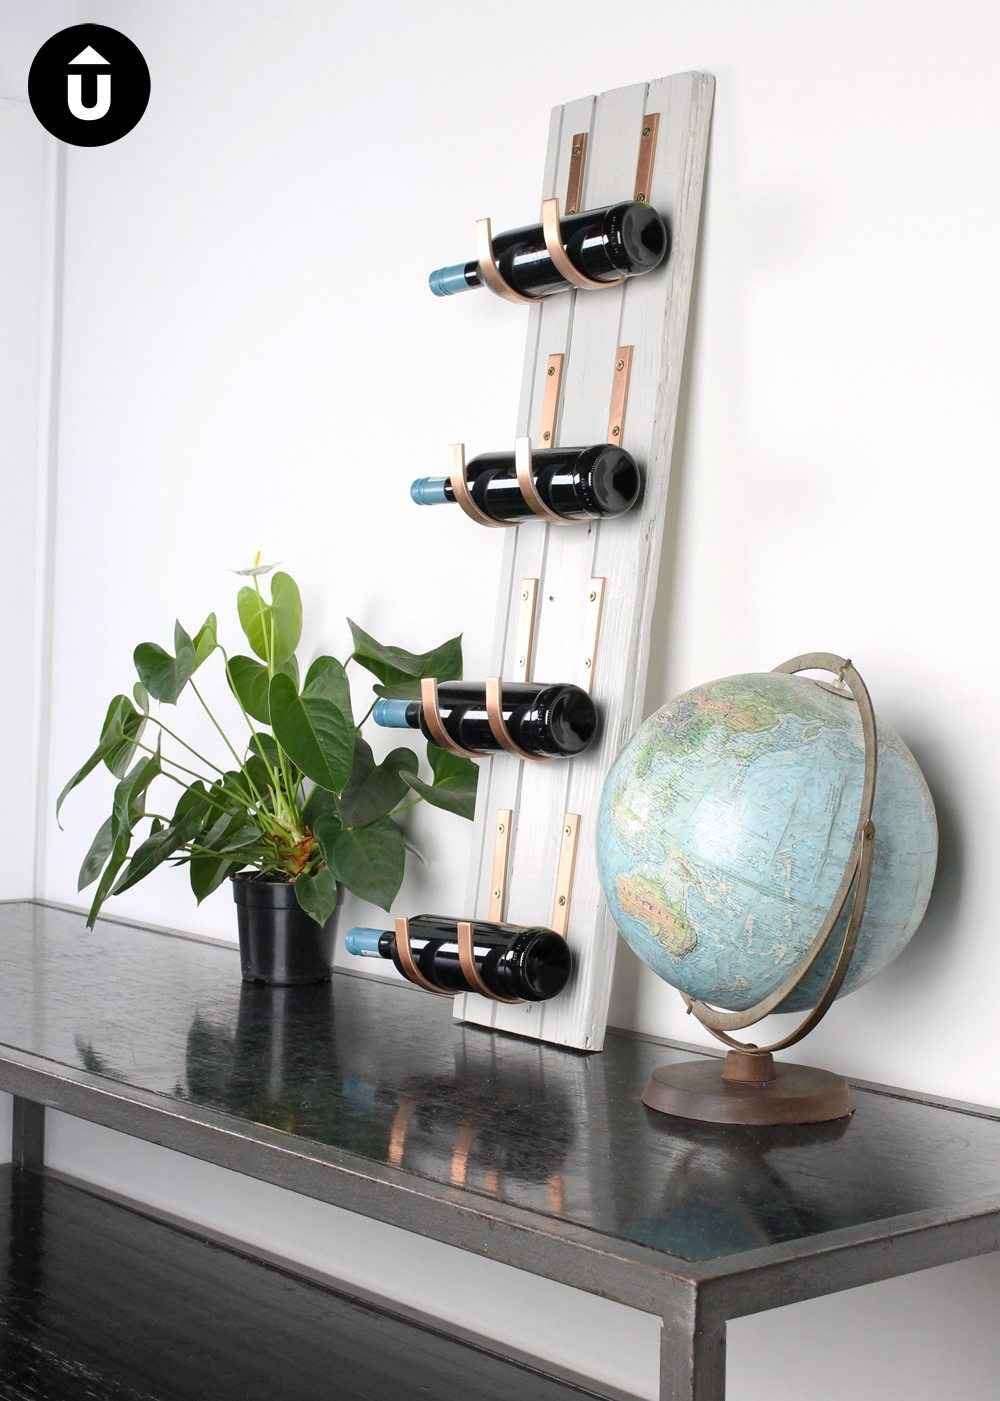 diy how shanty wine to build a chic rack